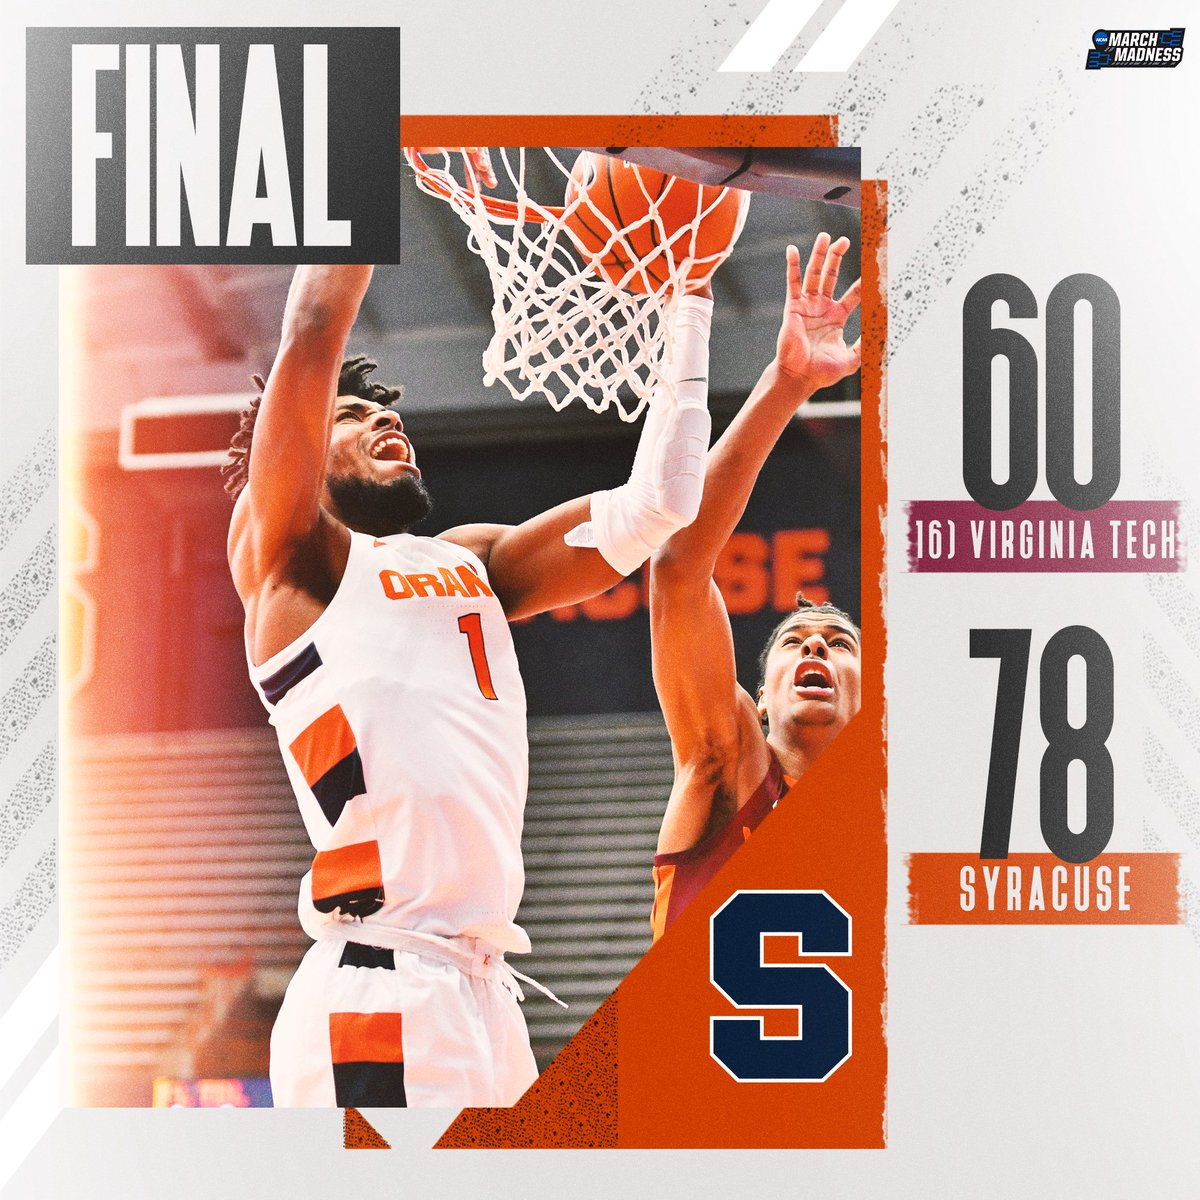 GO ORANGE! 💪🍊  Syracuse downs No. 16 Virginia Tech in the Carrier Dome!